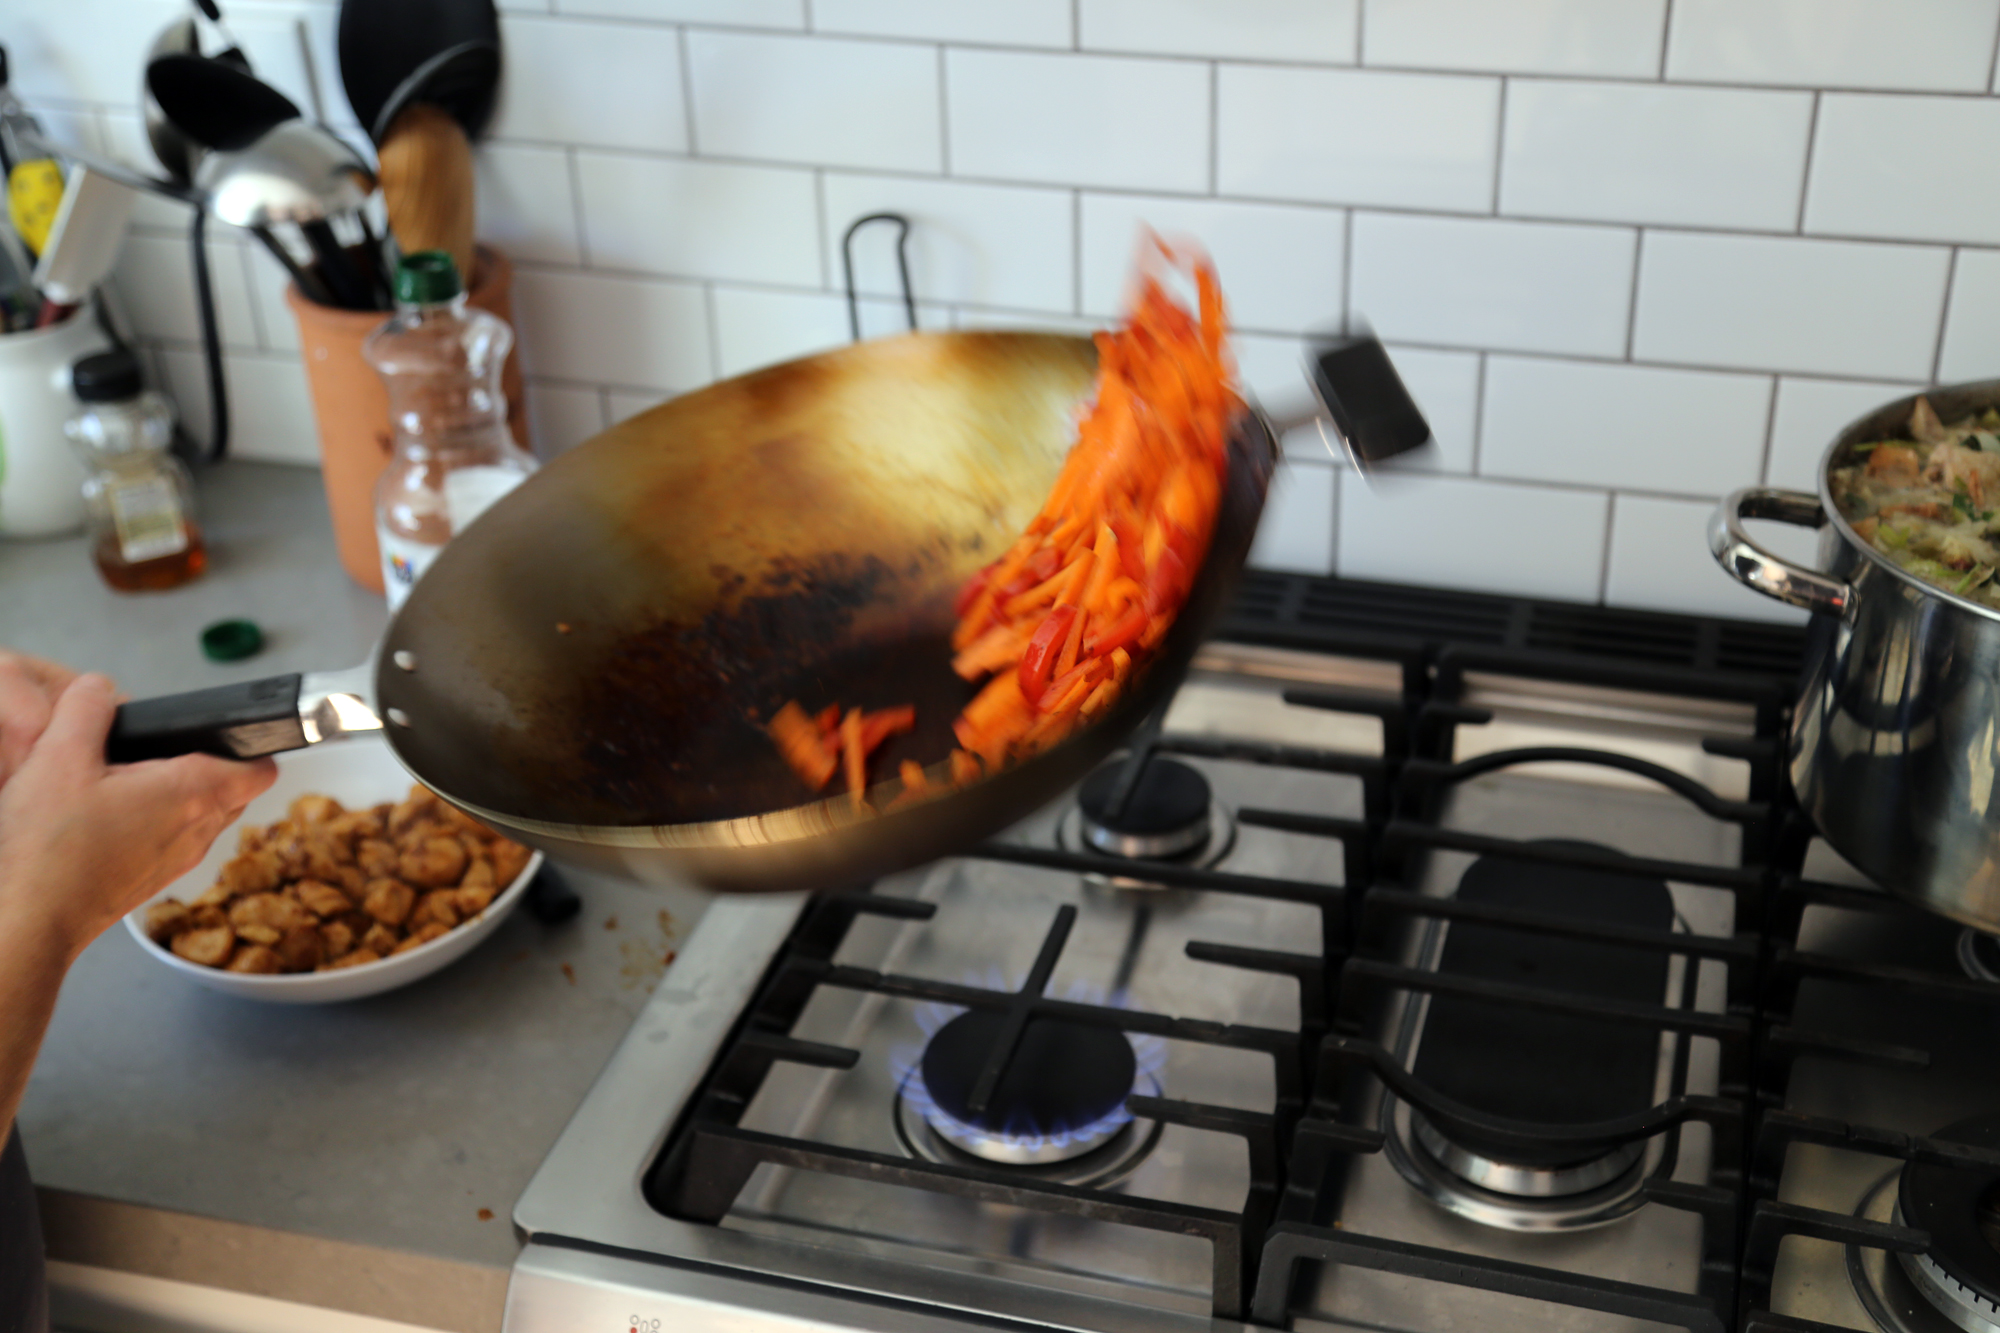 Add a teaspoon or two of oil to the wok, then add the bell pepper and carrots. Cook, stirring, for about 5 minutes, until just starting to become tender.